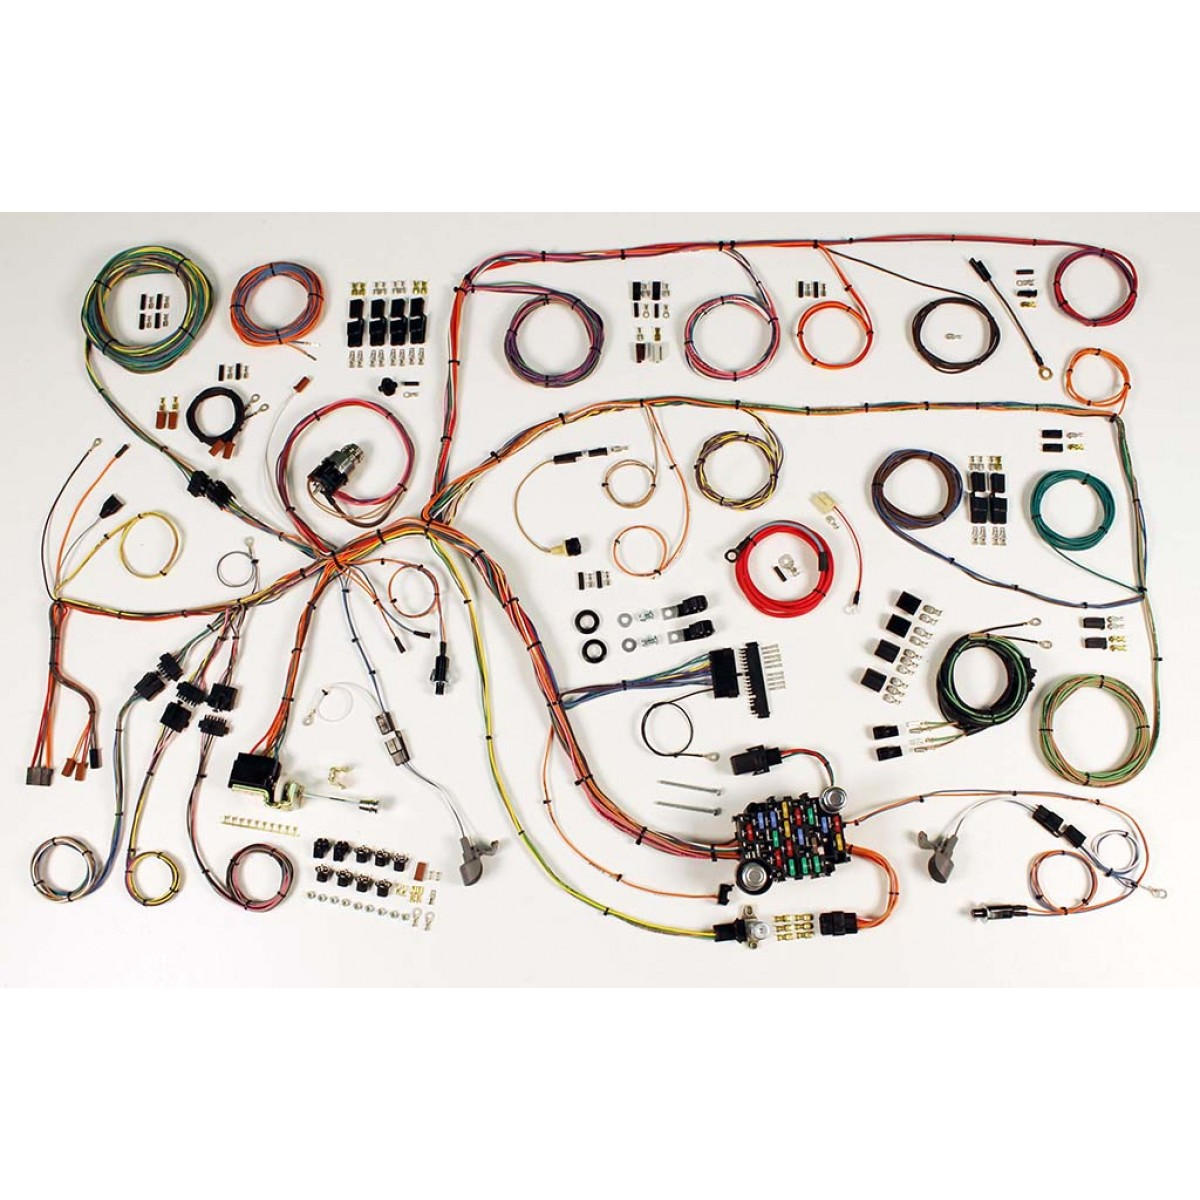 1960 1964 ford falcon complete wiring harness kit 1960 1964 ford rh code510 com